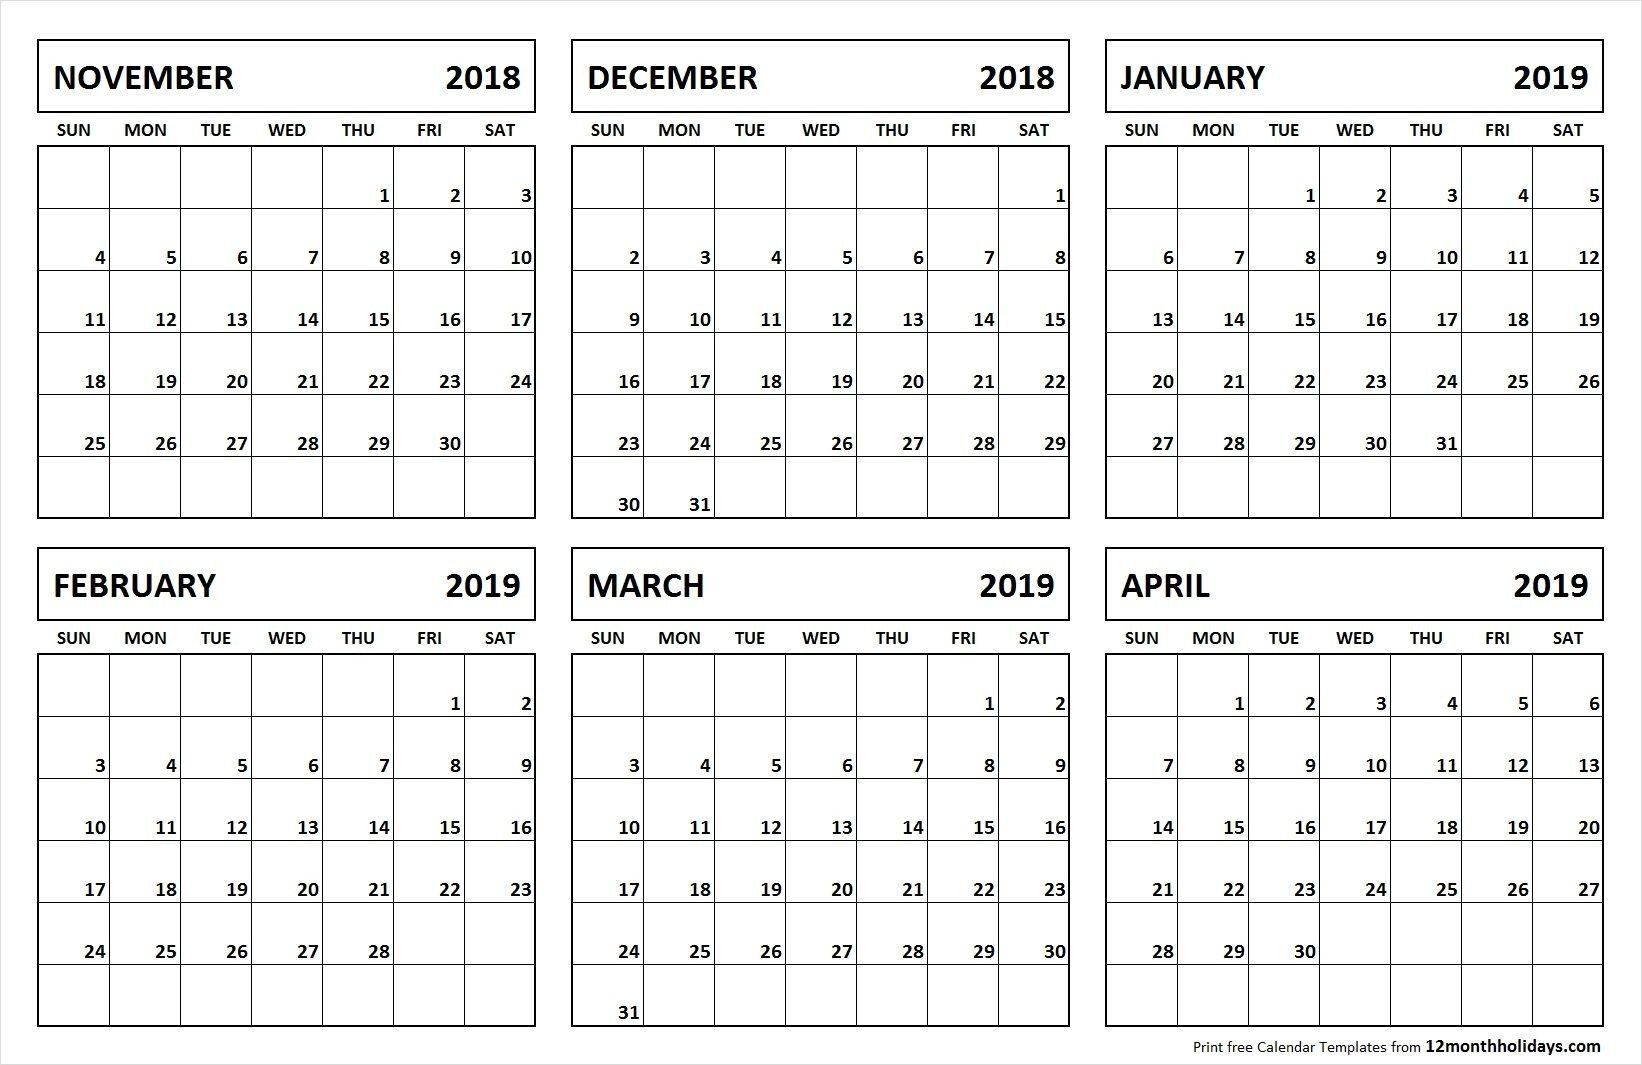 6 Month Calendar November 2018 April 2019 | Calendar March-Blank Calendar 6 Months